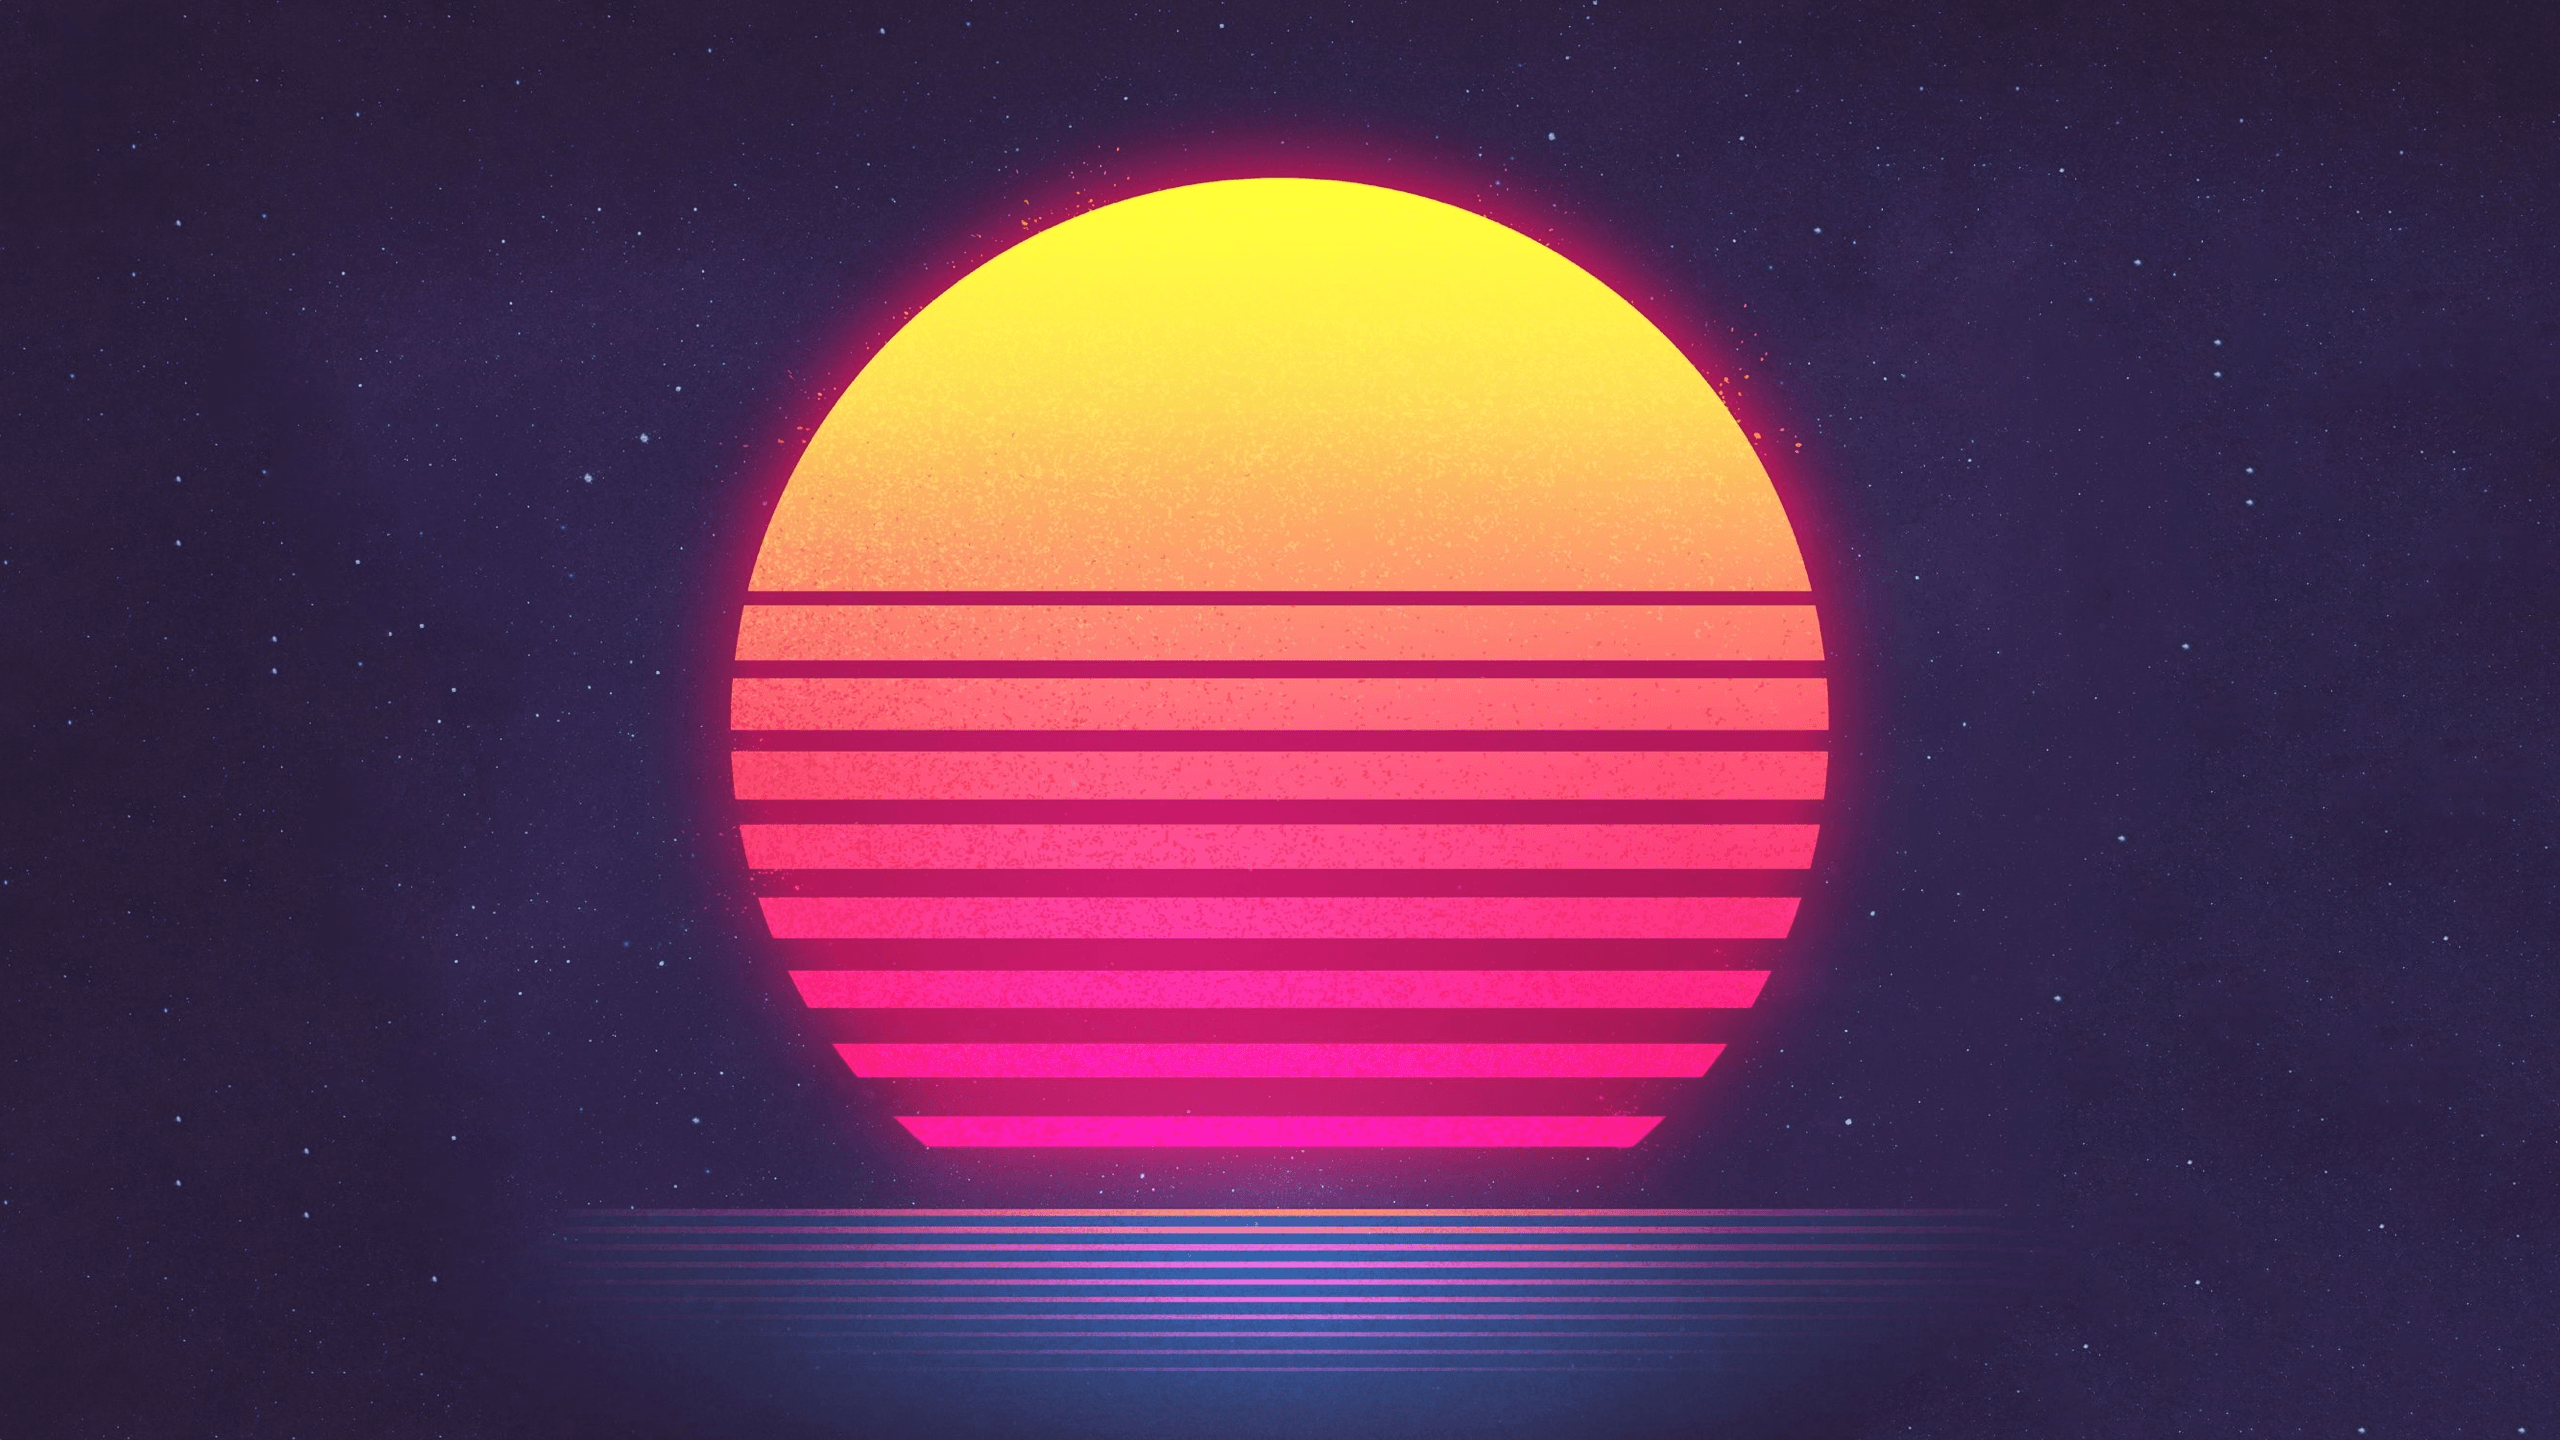 Retro Wave Full HD Wallpapers and Backgrounds